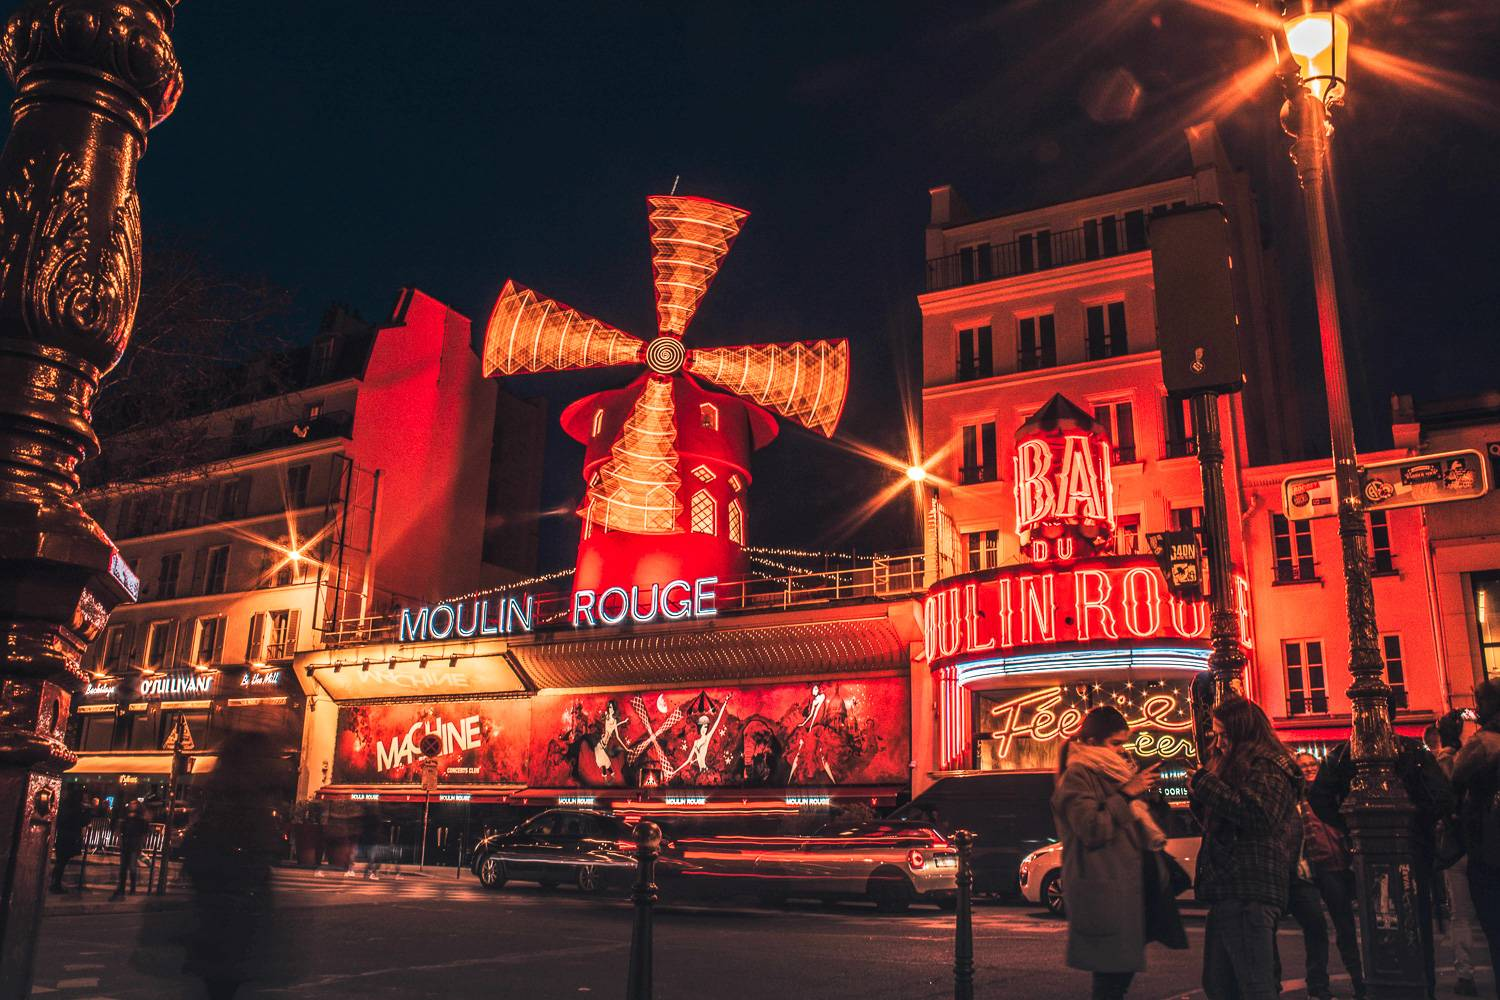 Image of the front of Moulin Rouge in a red overlay.